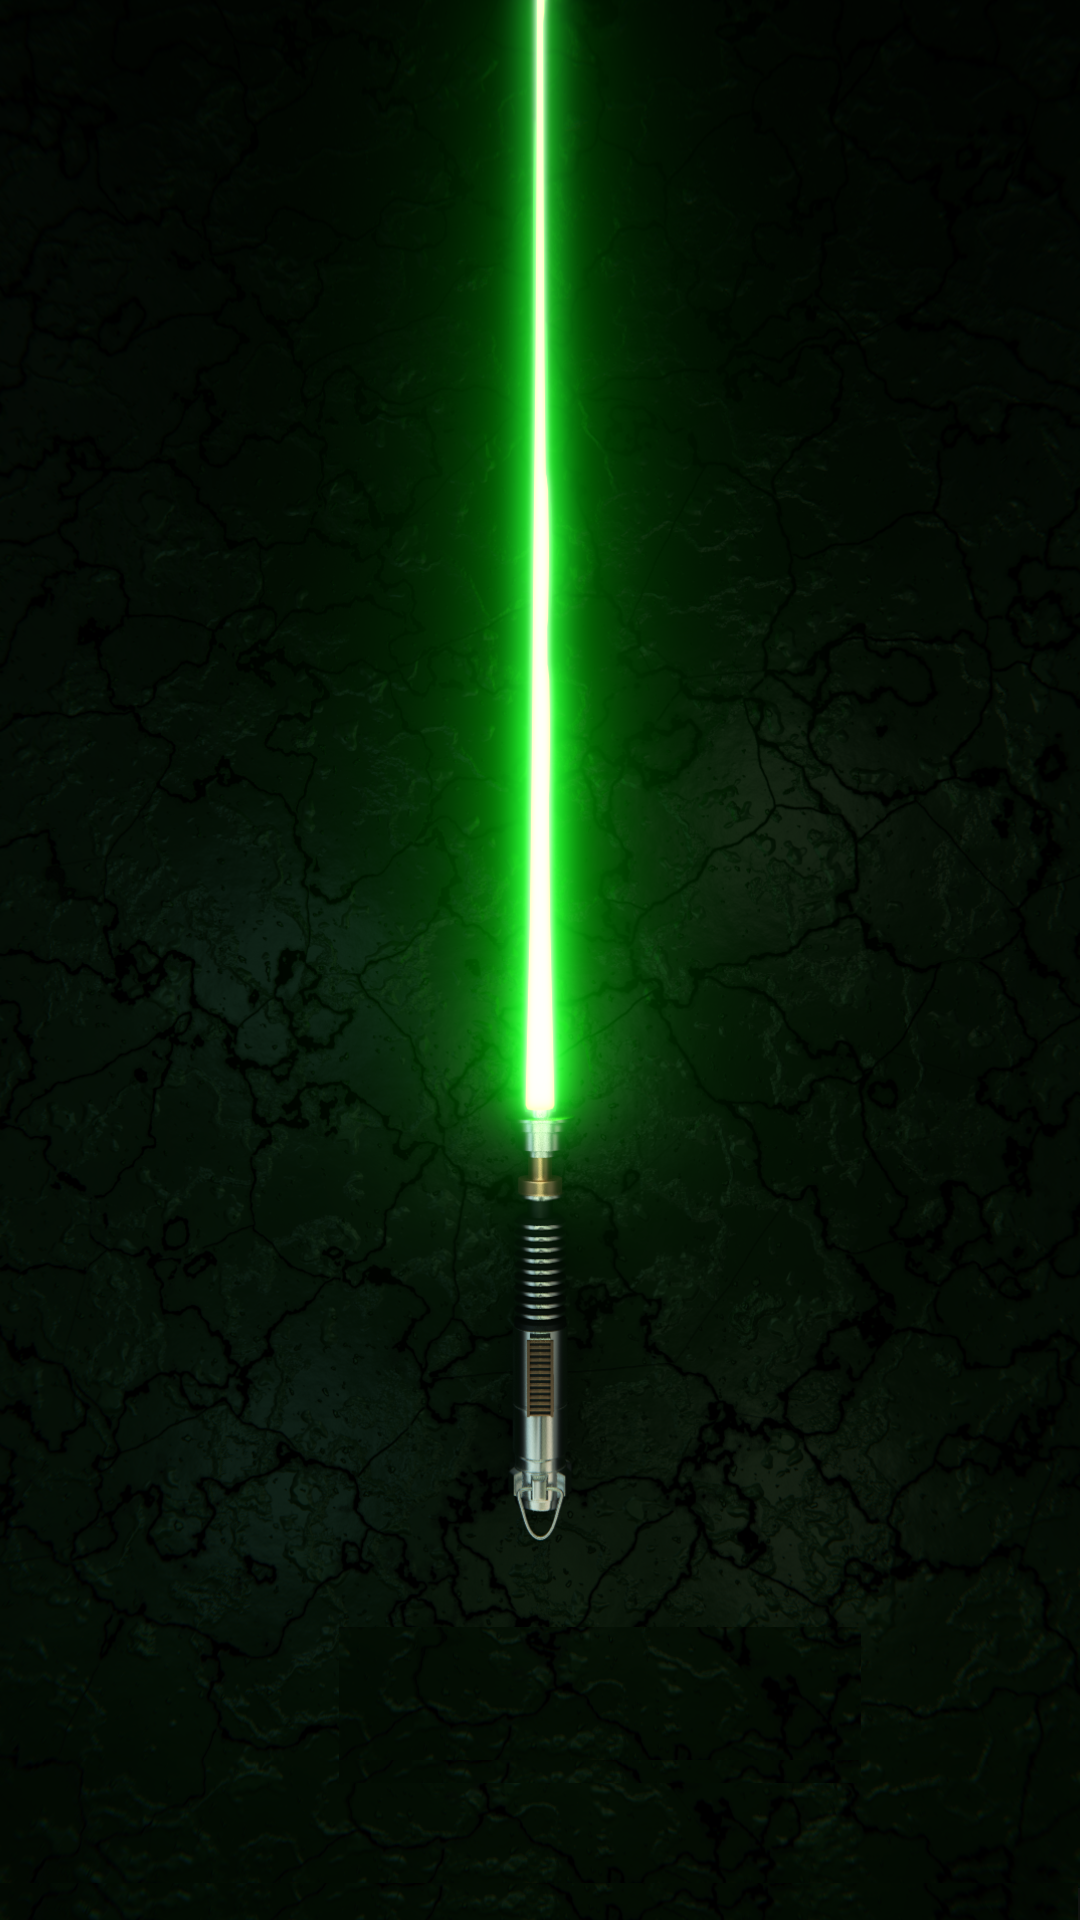 Star Wars Lightsaber Tap To See More Exciting Star Wars Wallpaper Mobile9 Star Wars Wallpaper Star Wars Pictures Star Wars Background